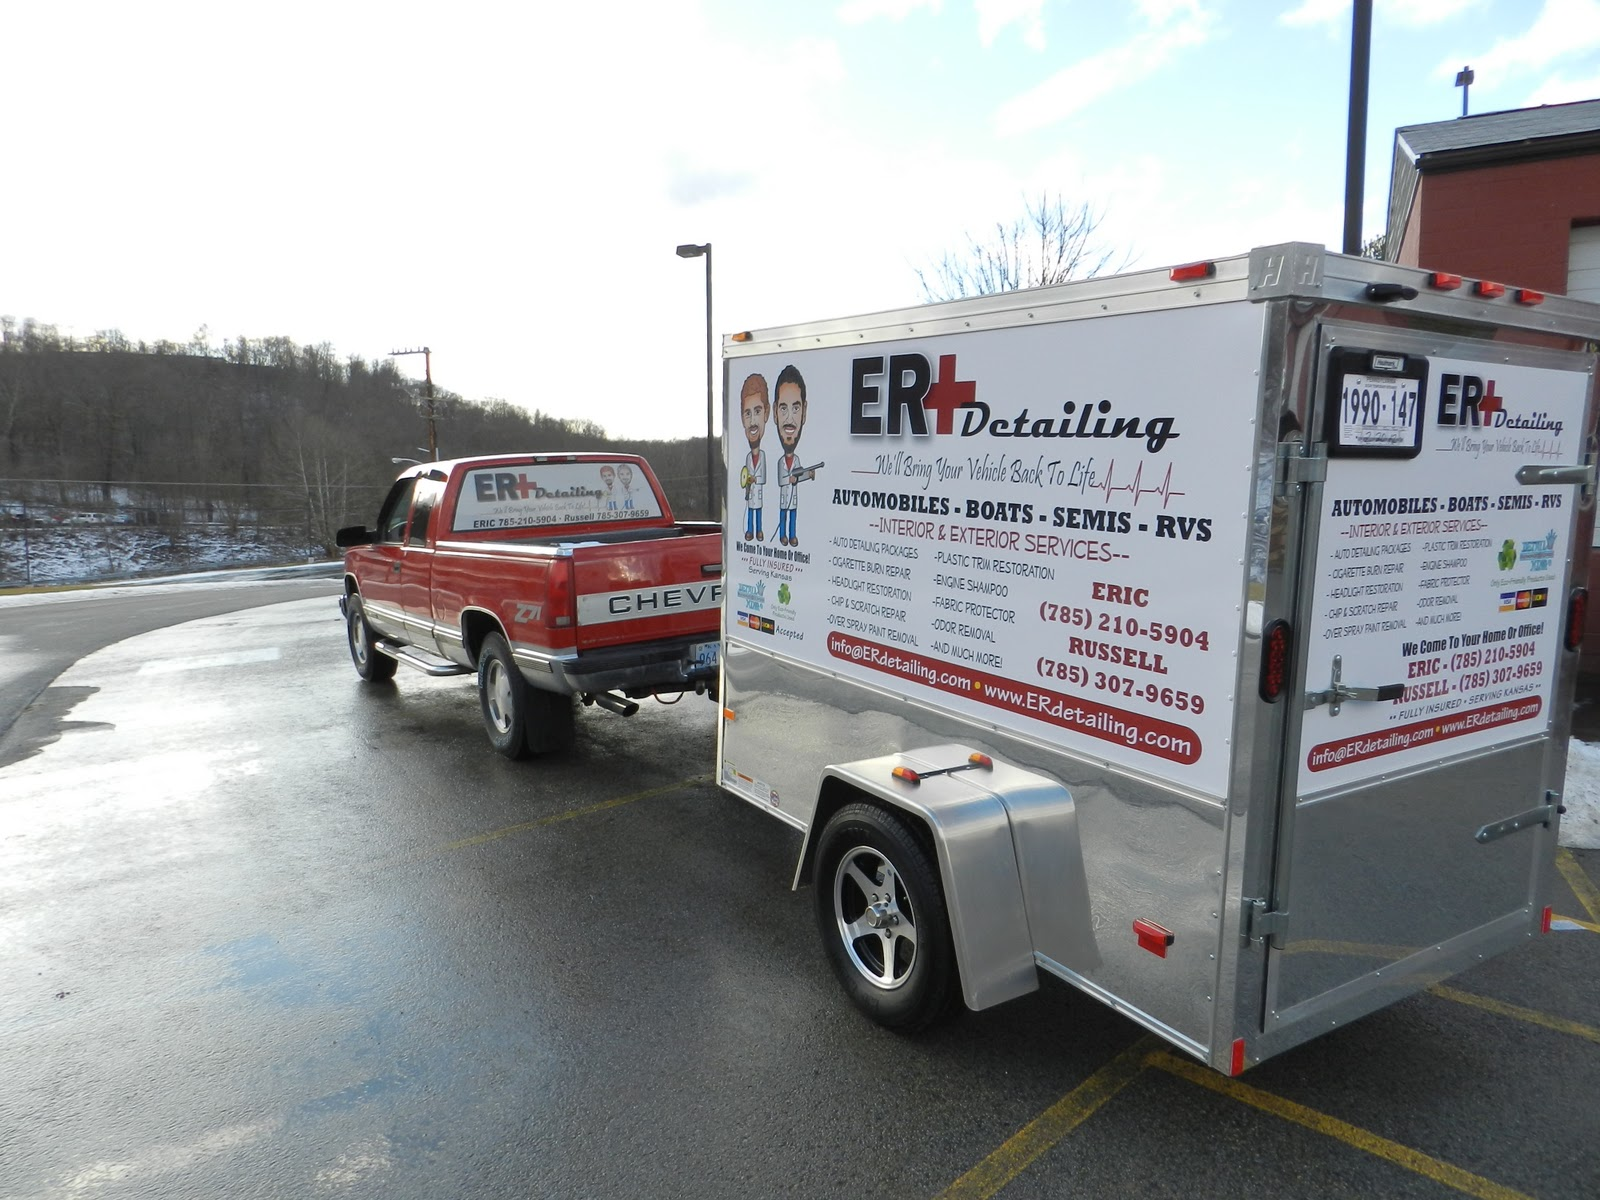 New Auto Detailing Business Owners! | Auto Detailing Business Blog ...